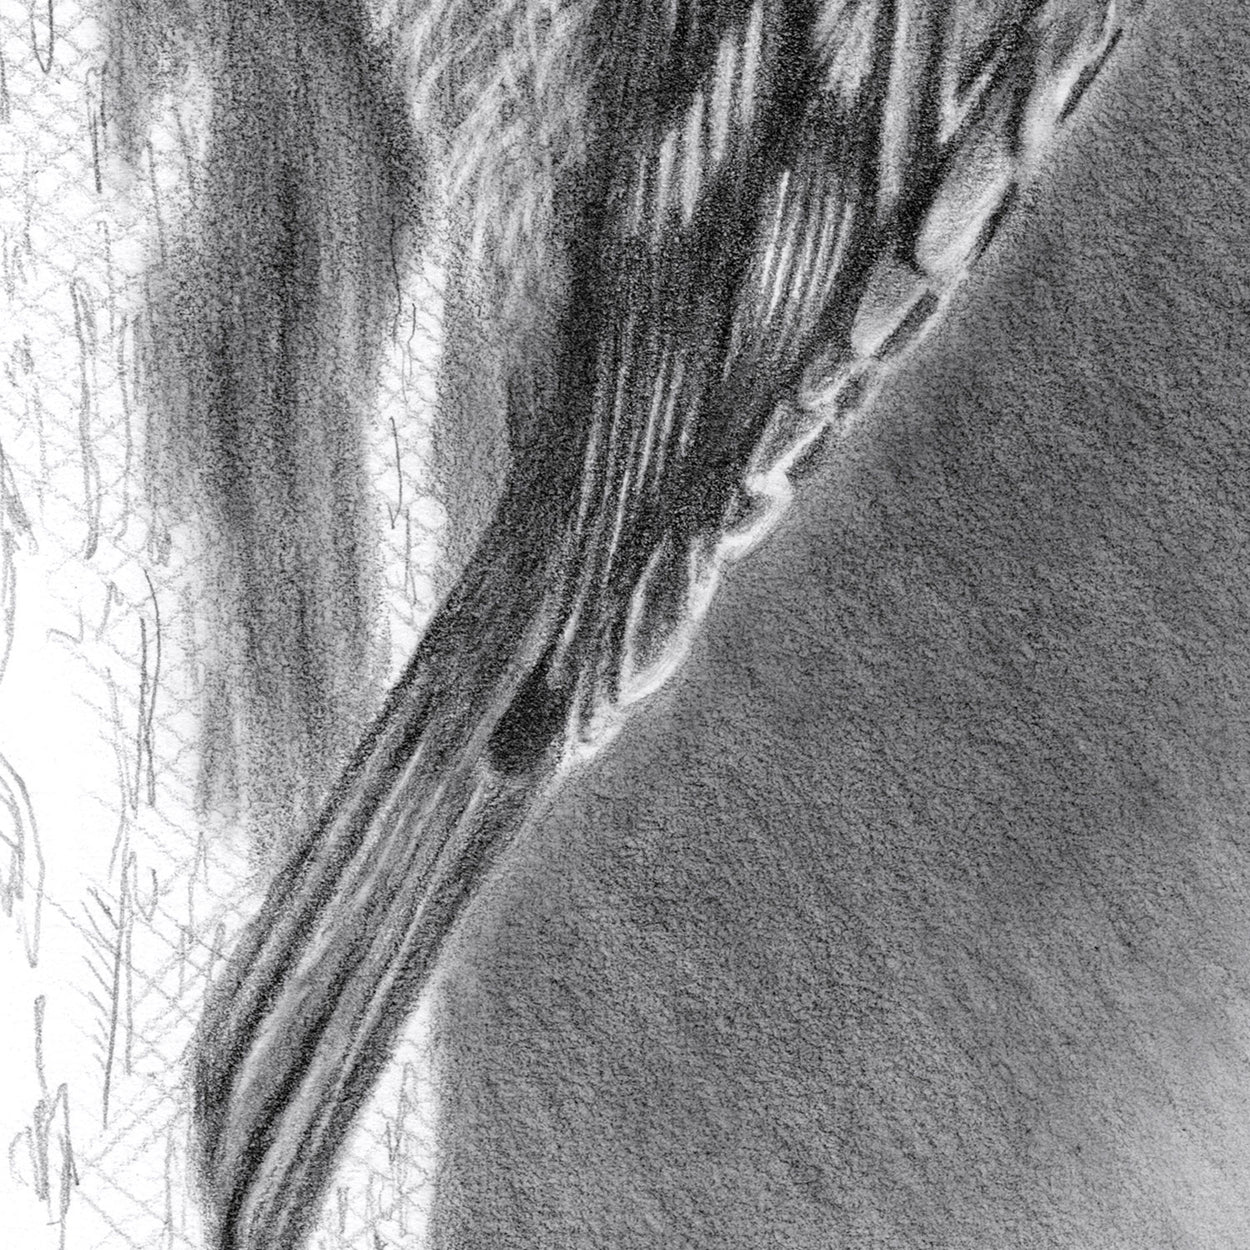 Treecreeper Bird Drawing Close-up 3